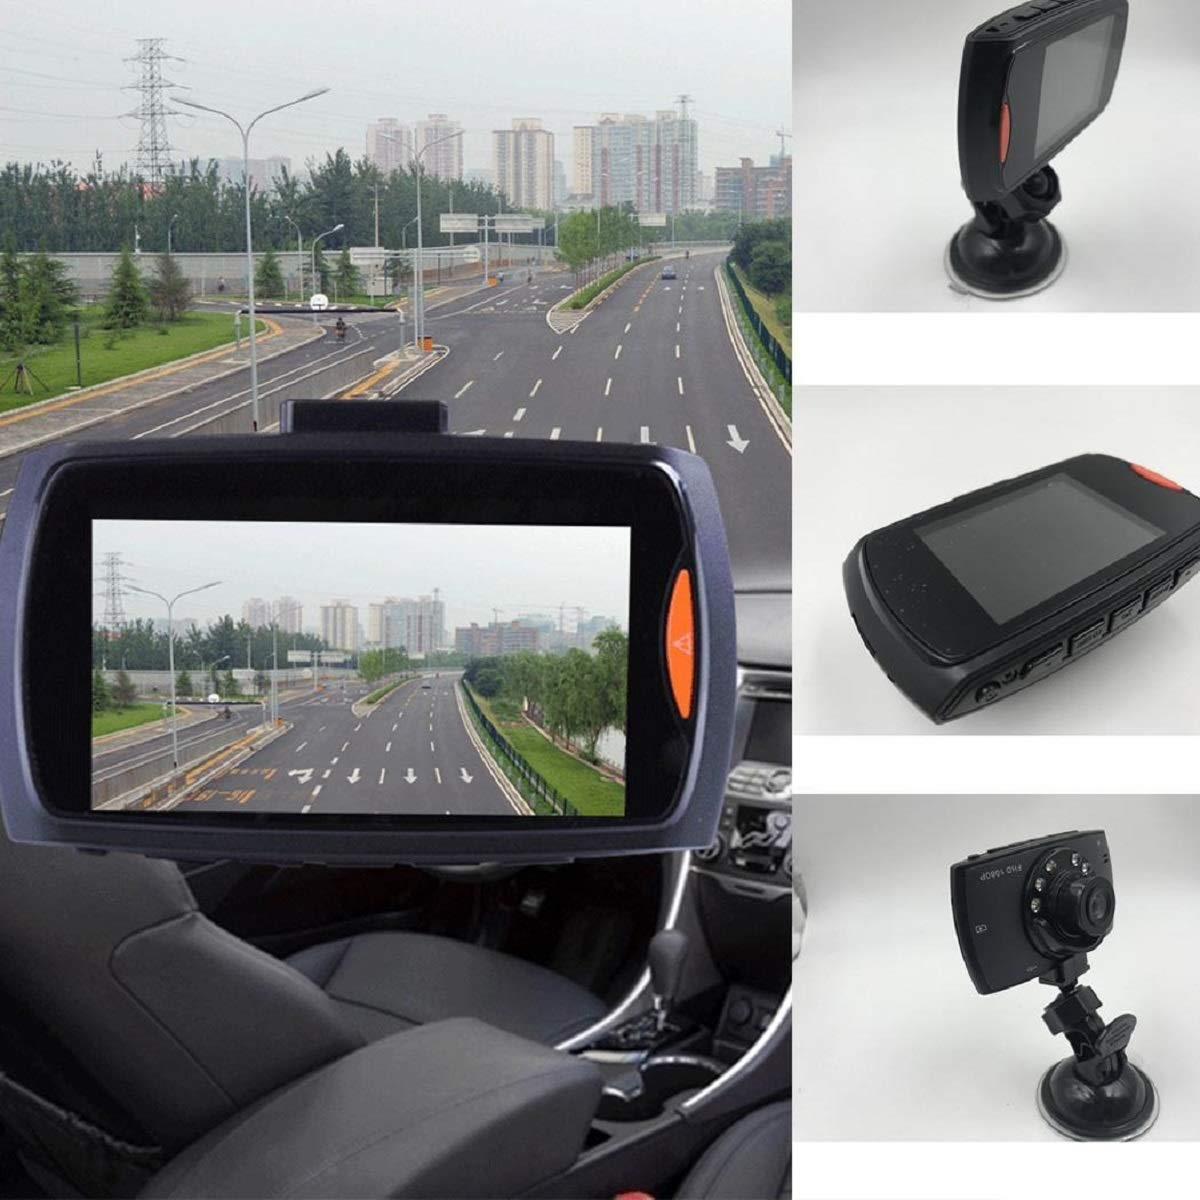 vobome 720P/1080P Full HD Screen Car DVR Camera Multi-Function HD Driving Recorder Super Wide-Angle Night Vision Camera Automobile Recorder